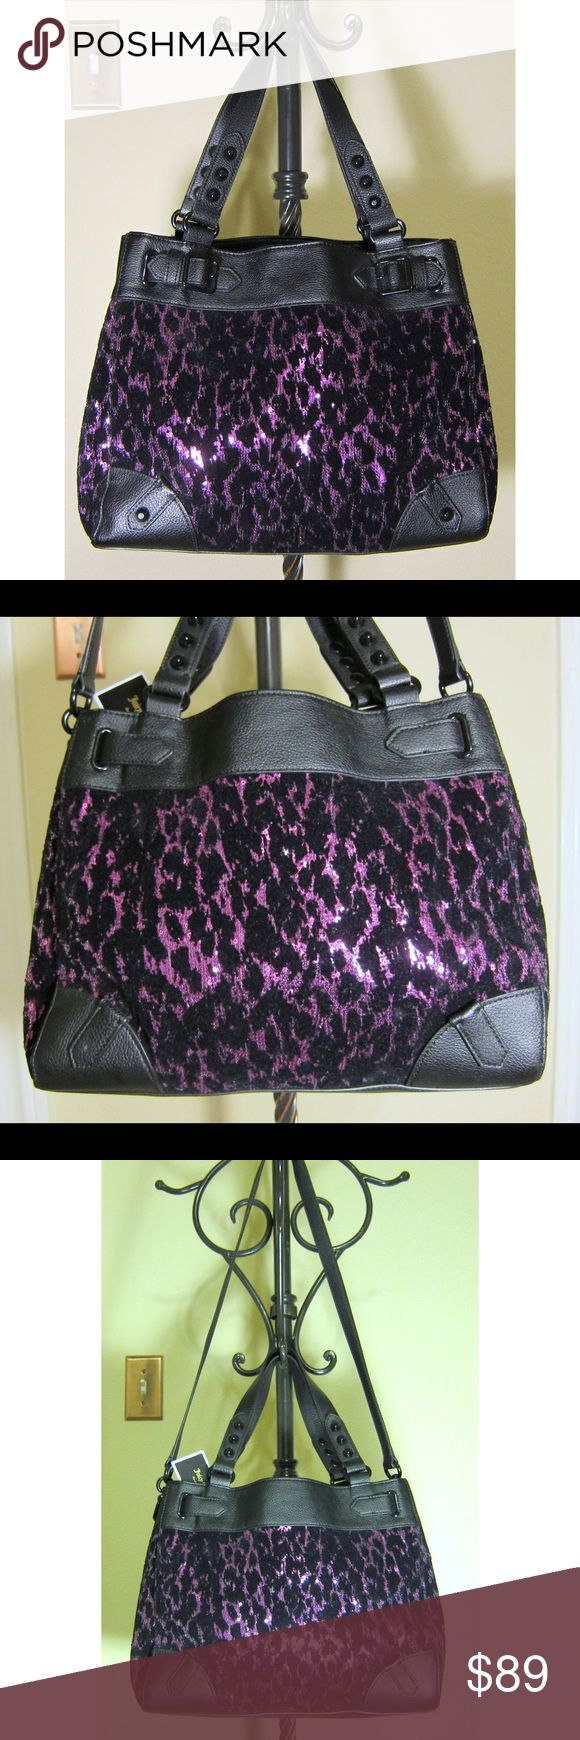 NWT Juicy Couture purple animal print shoulder bag 💜NWT💜FABULOUS Juicy Couture purple animal print shoulder bag. This purse is a fashion statement! Brand new, very spacious 😍. Interior features one zip compartment and two organizer pockets. You can wear it with the long shoulder strap (detachable) or the shorter handles. Such a beautiful bag!!! Juicy Couture Bags Shoulder Bags